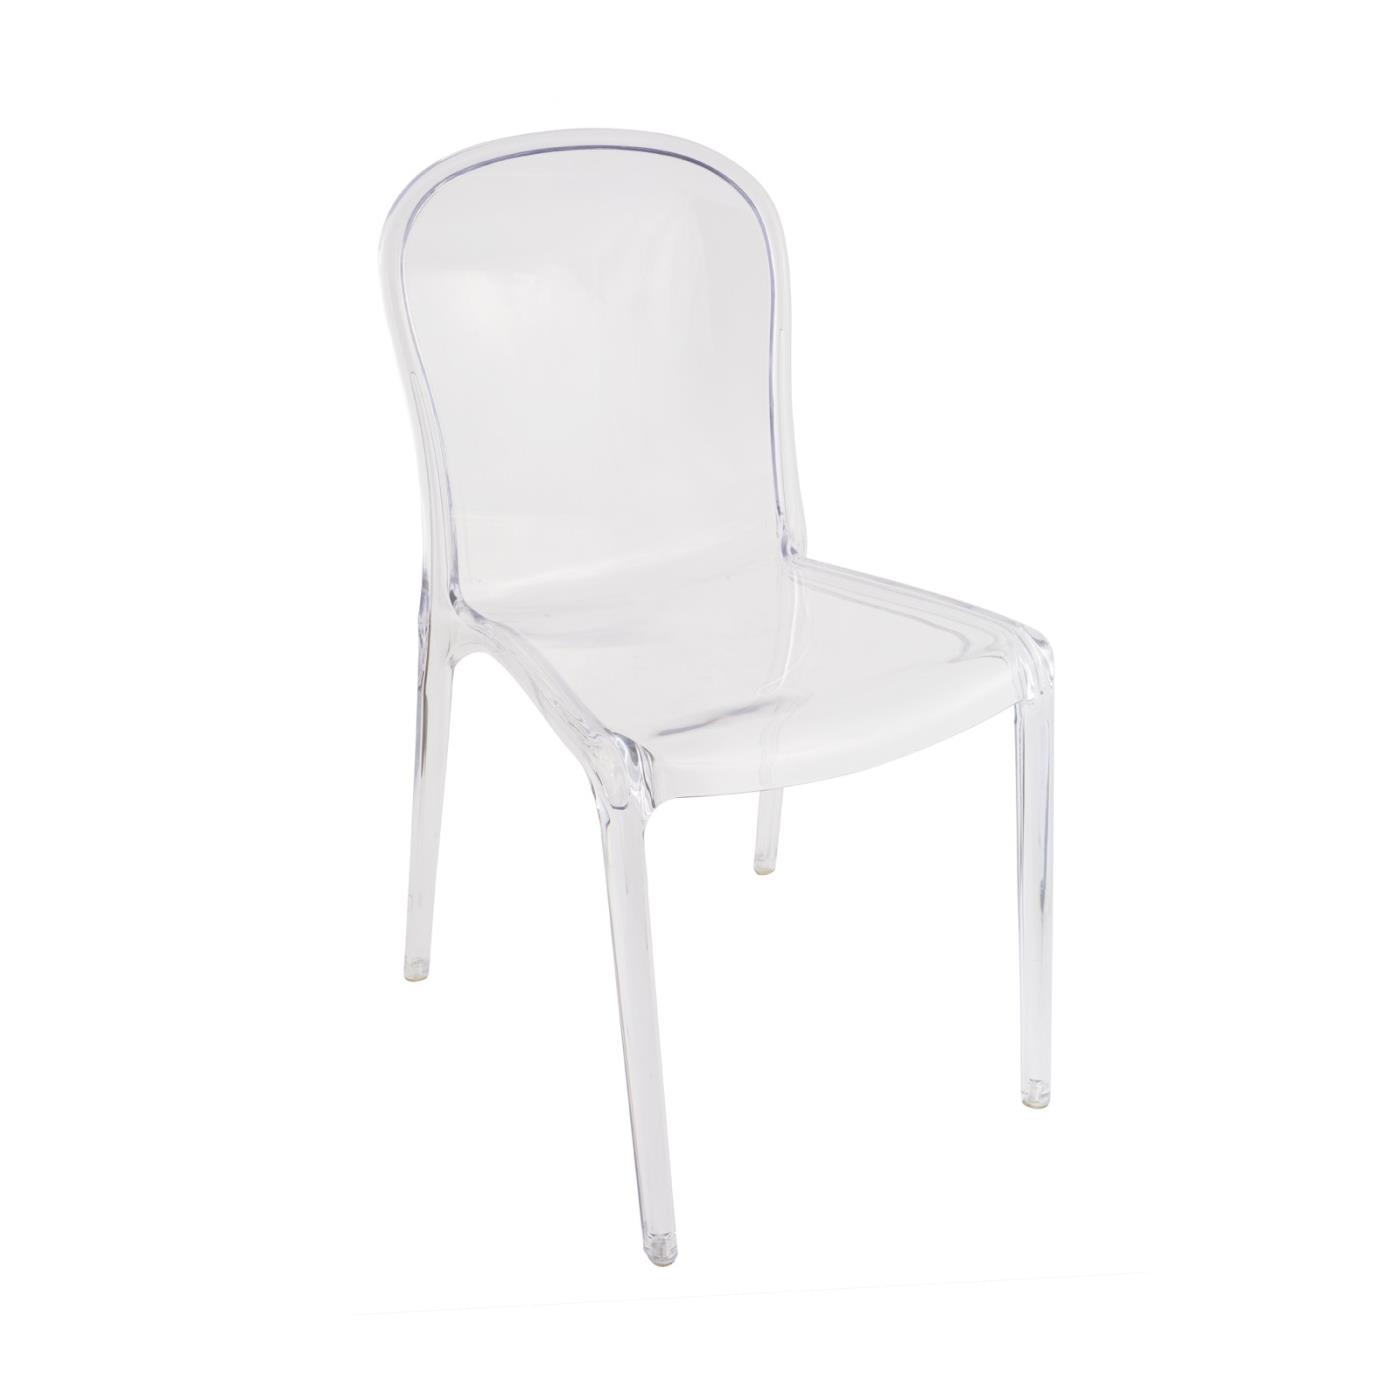 Mirage Chair